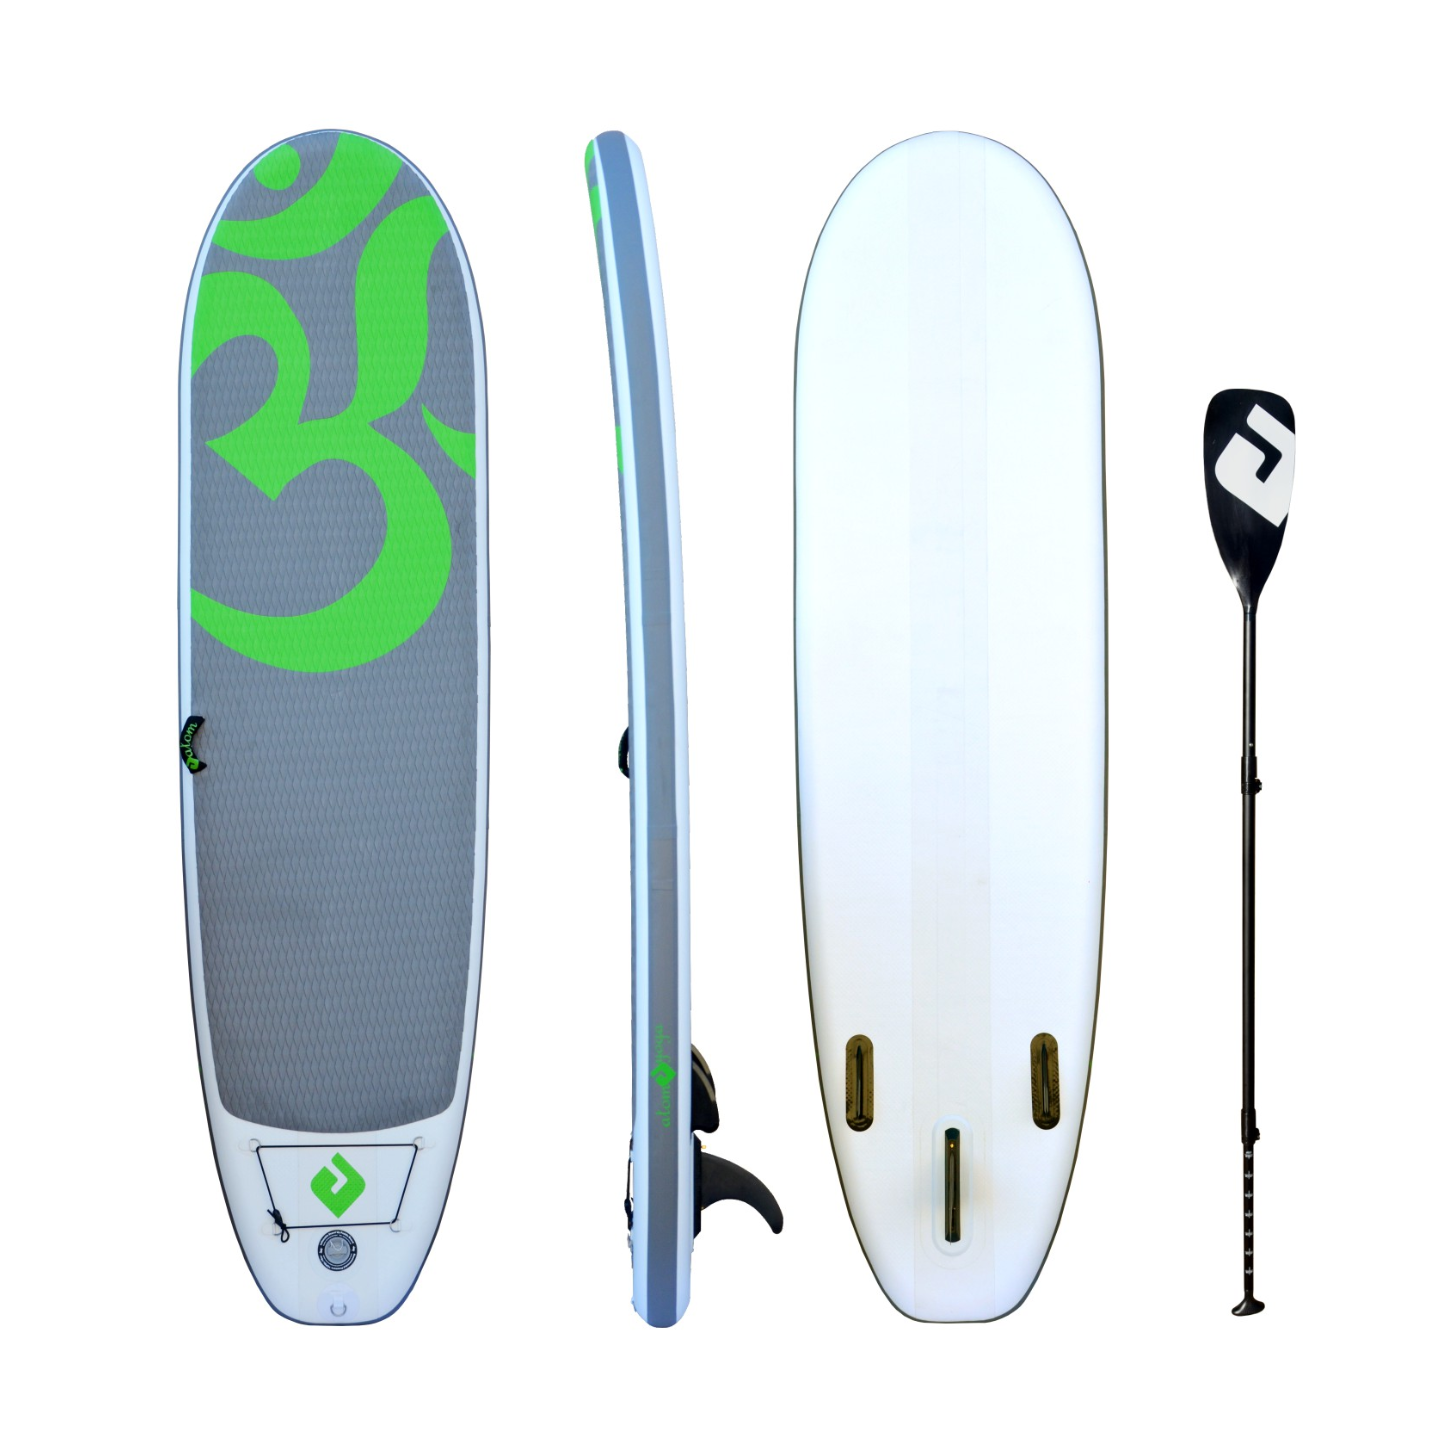 """Image of Atom Inflatable Stand Up Paddle Board (SUP) Package - 10' x 33"""" x 6"""" - YOGA - Green"""